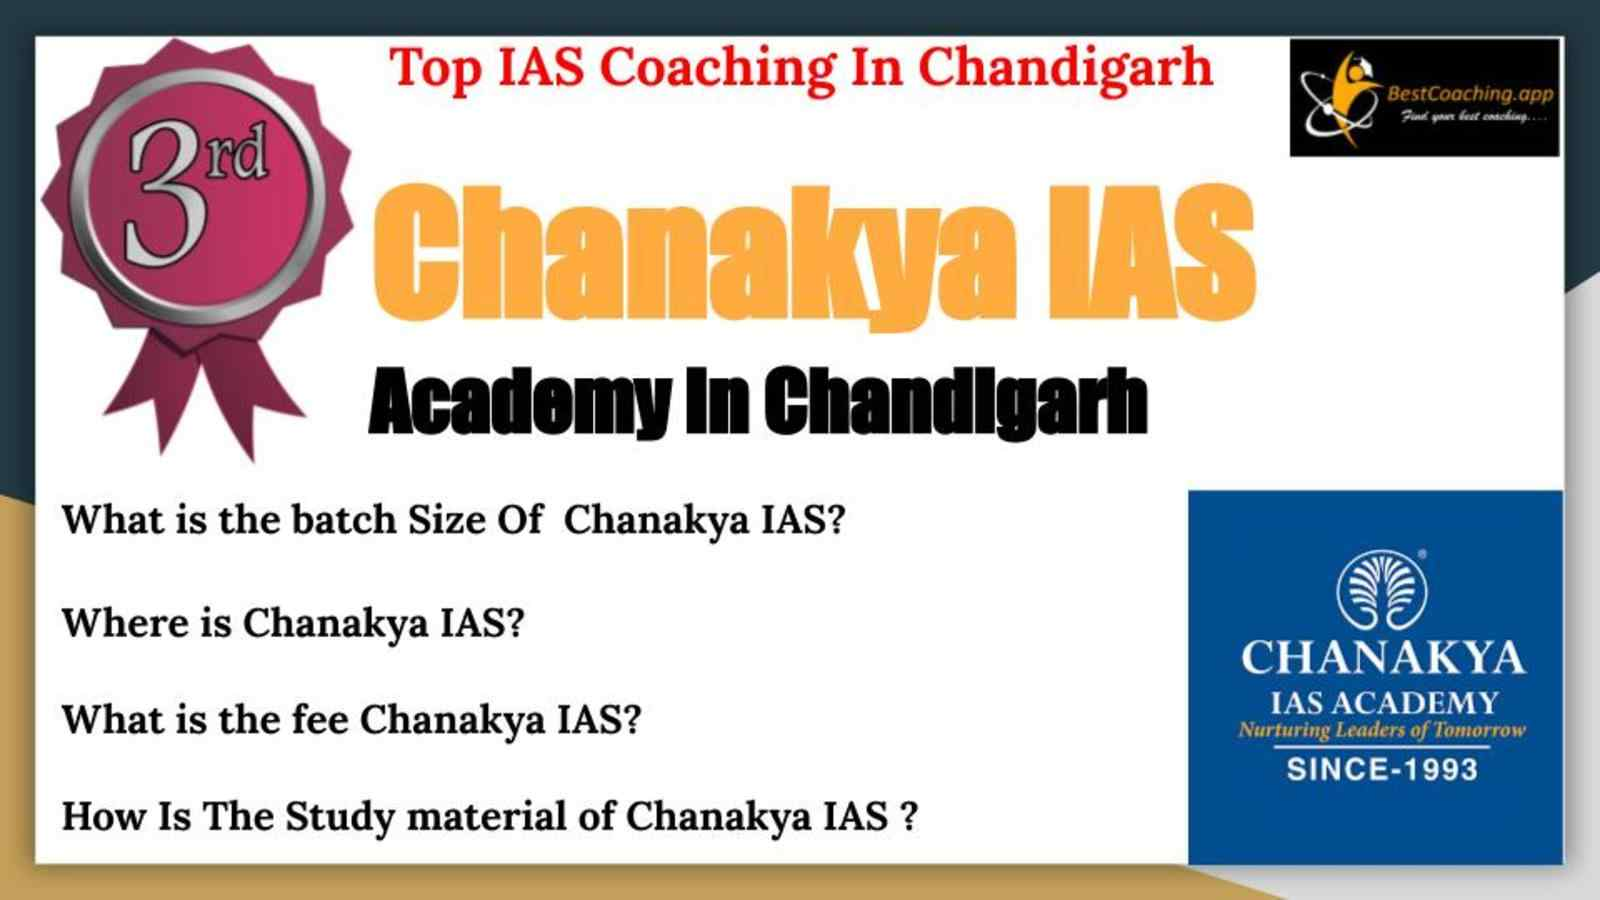 Best IAS Coaching Centers In Chandigarh